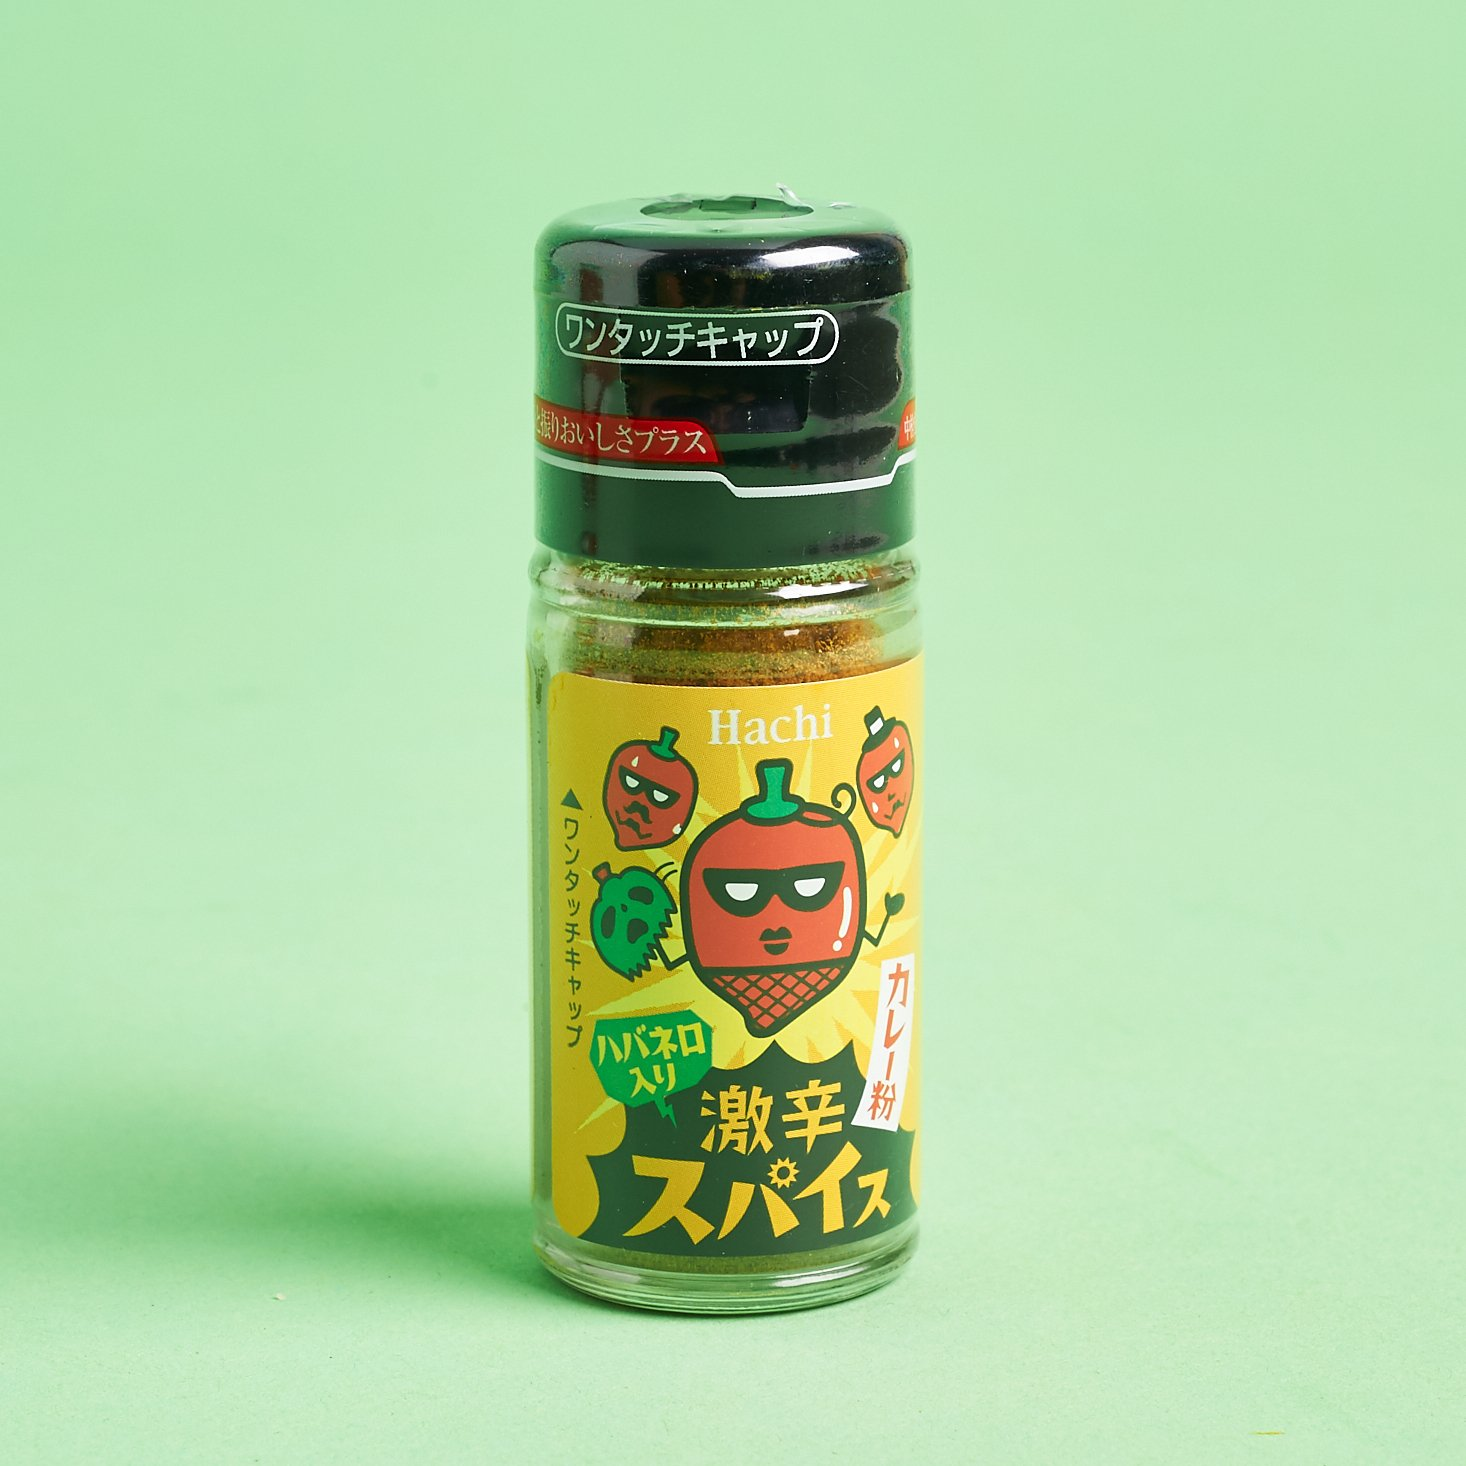 Umai Crate October 2019 - spicy curry powder bottle front